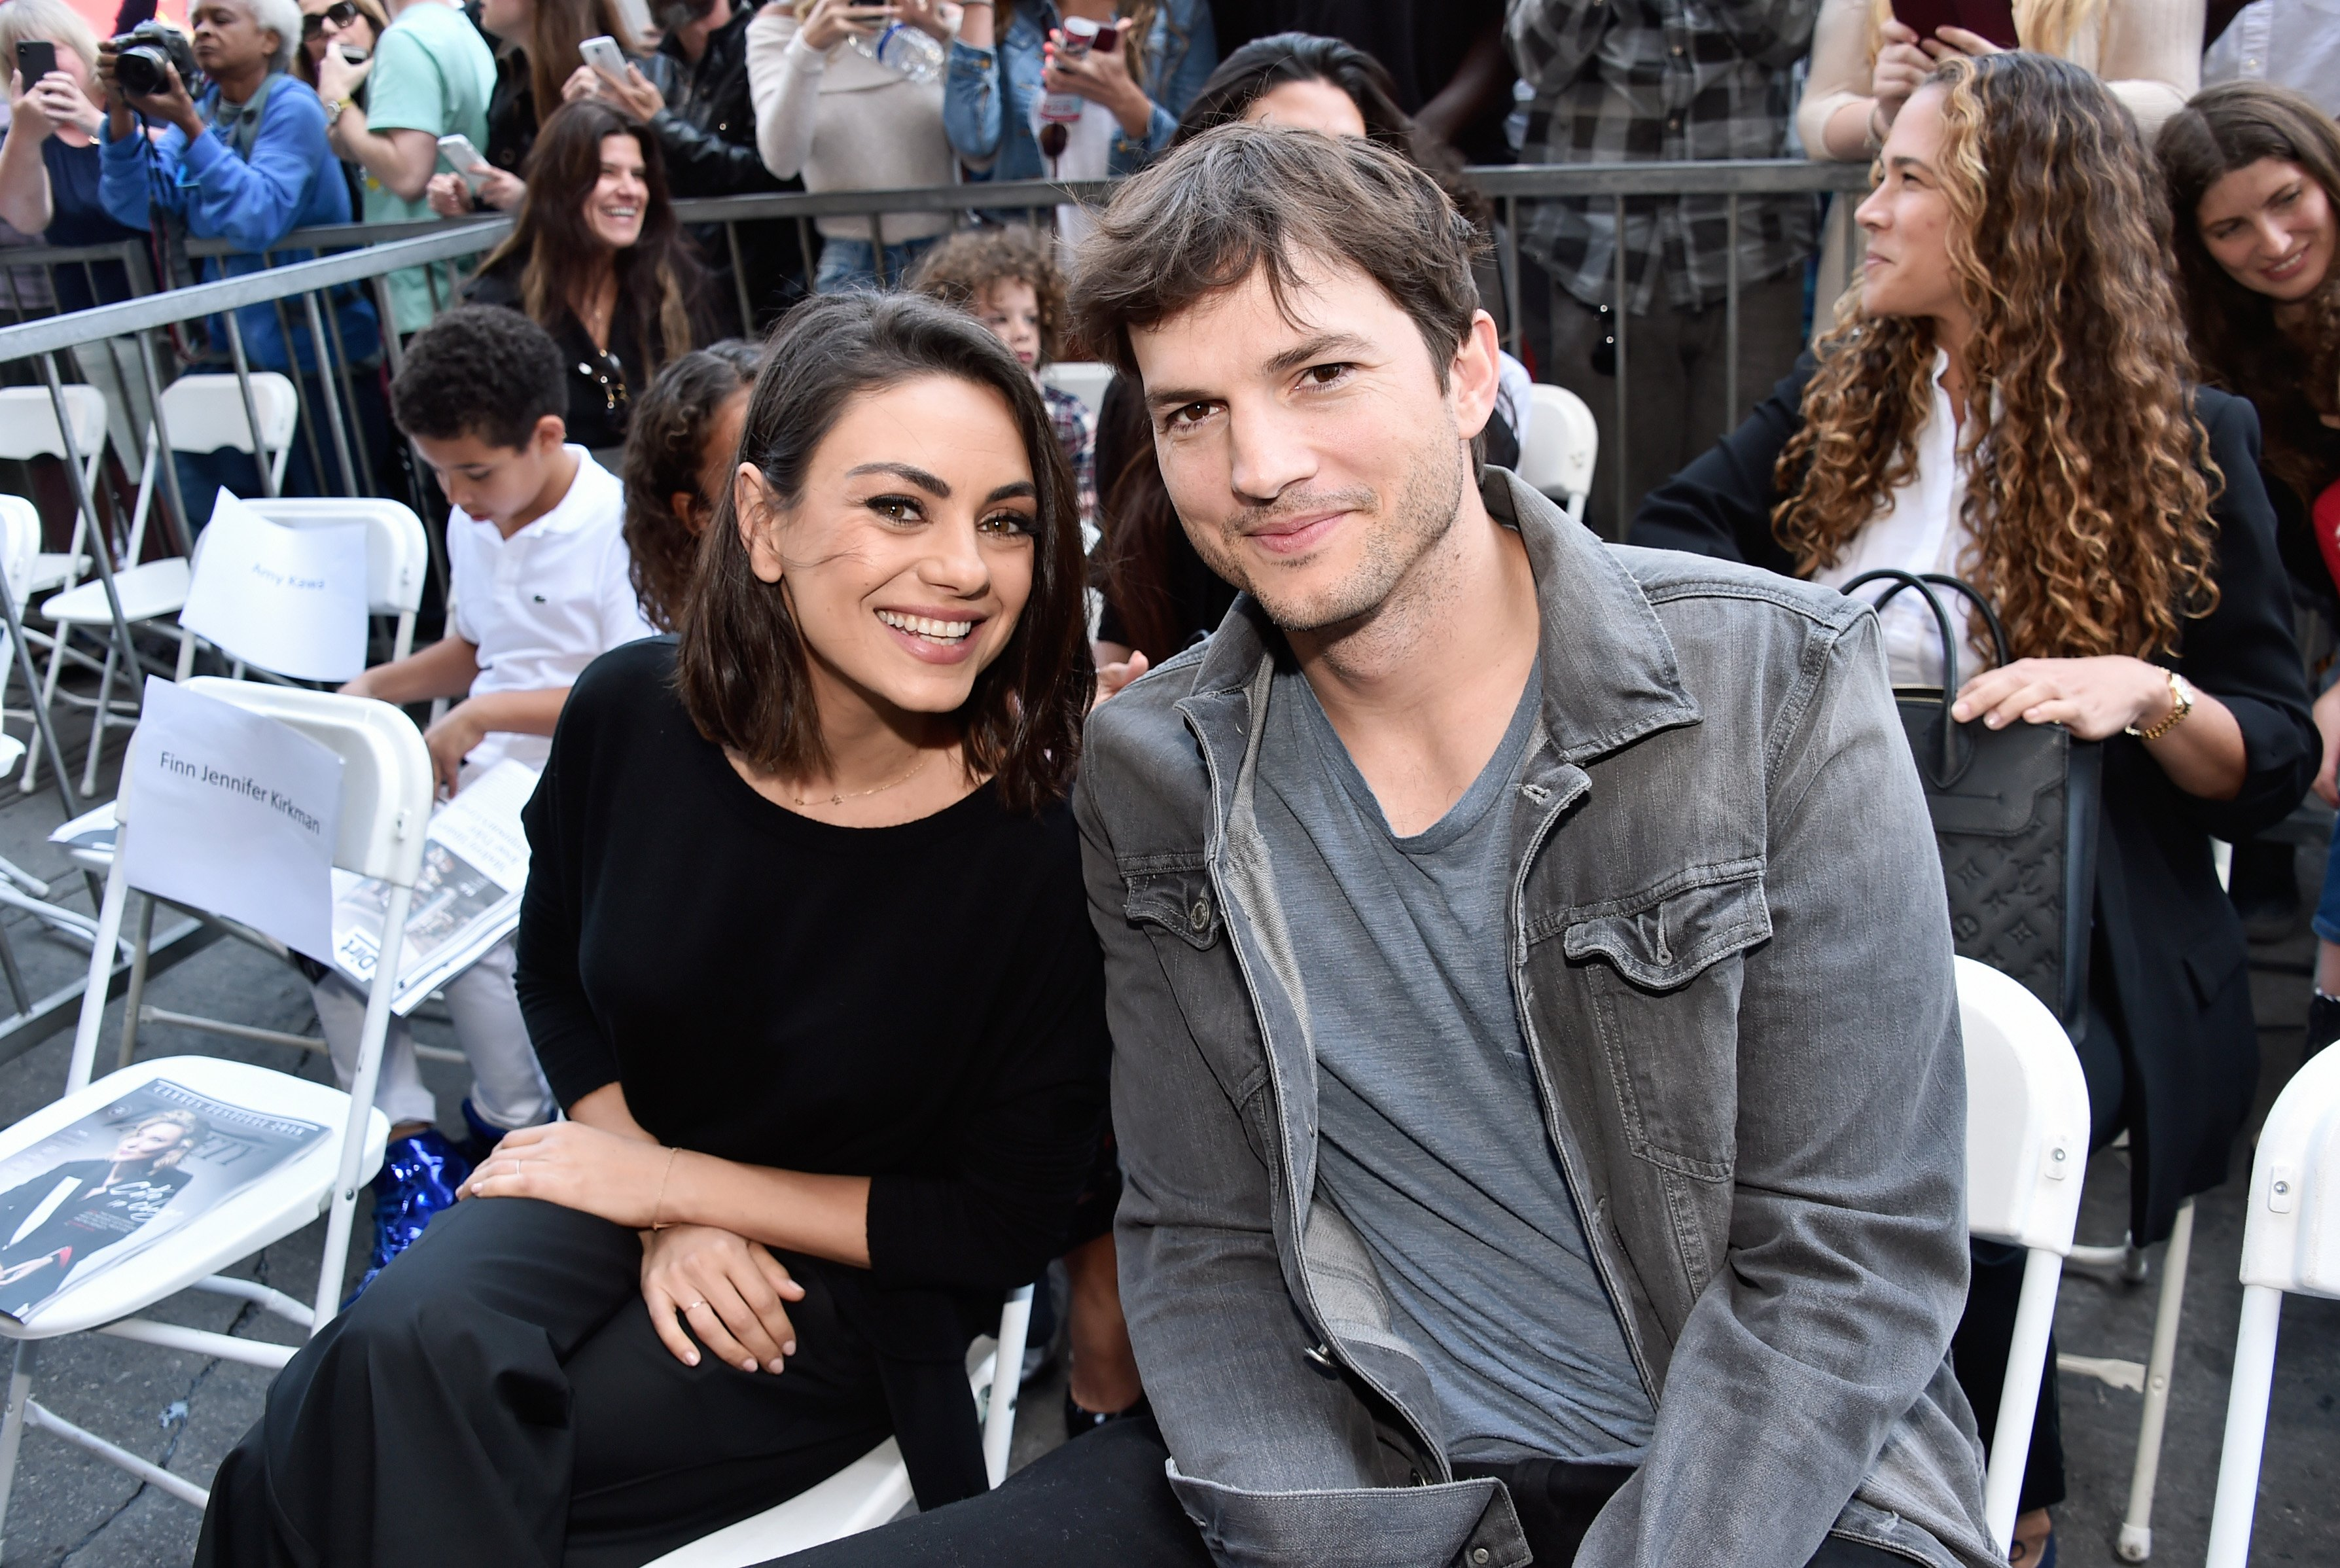 Image Credits: Getty Images / Alberto E. Rodriguez | Actors Mila Kunis (L) and Ashton Kutcher at the Zoe Saldana Walk Of Fame Star Ceremony on May 3, 2018 in Hollywood, California.